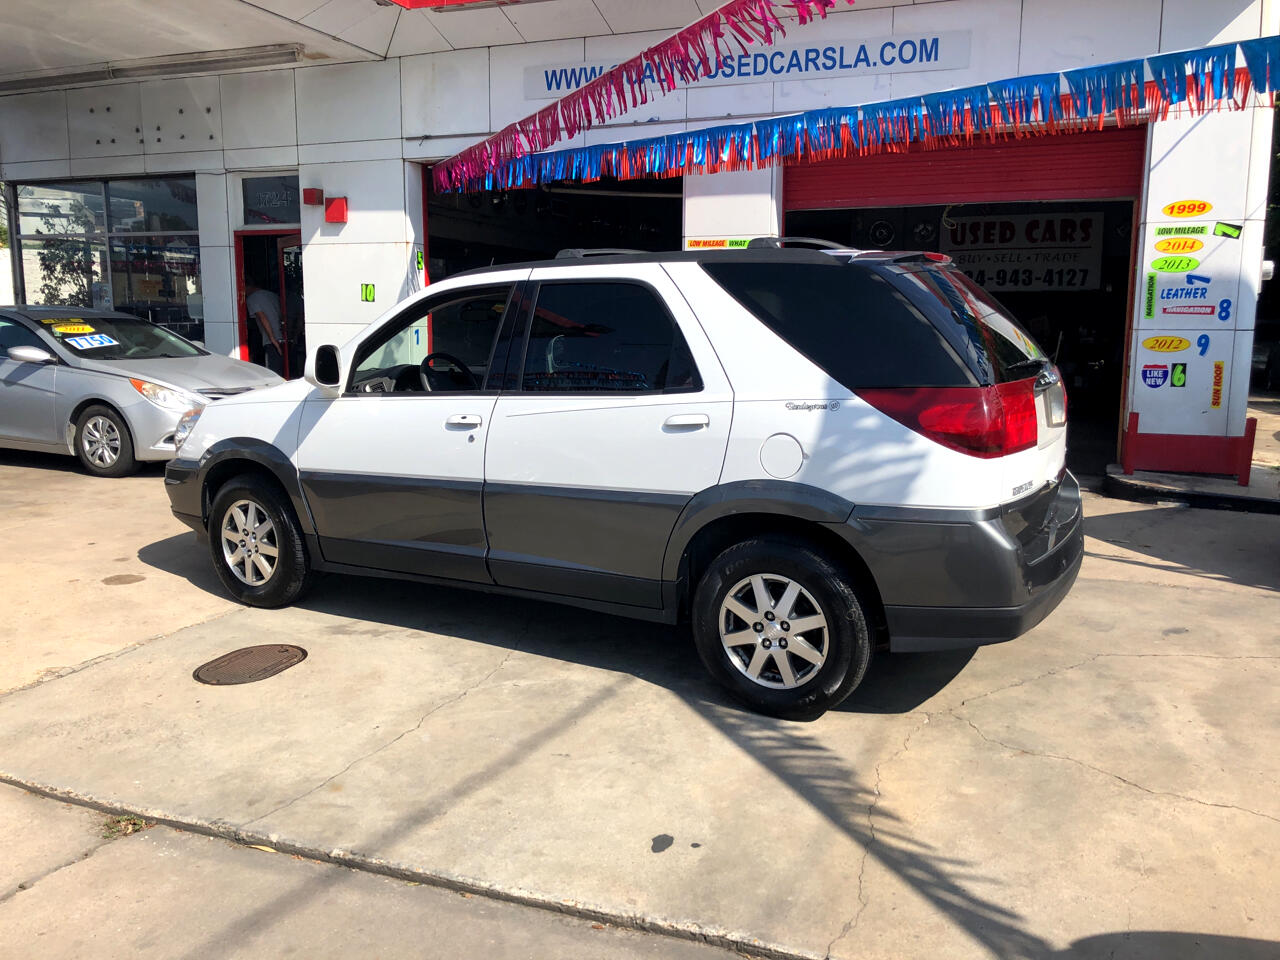 Buick Rendezvous 4dr FWD 2004